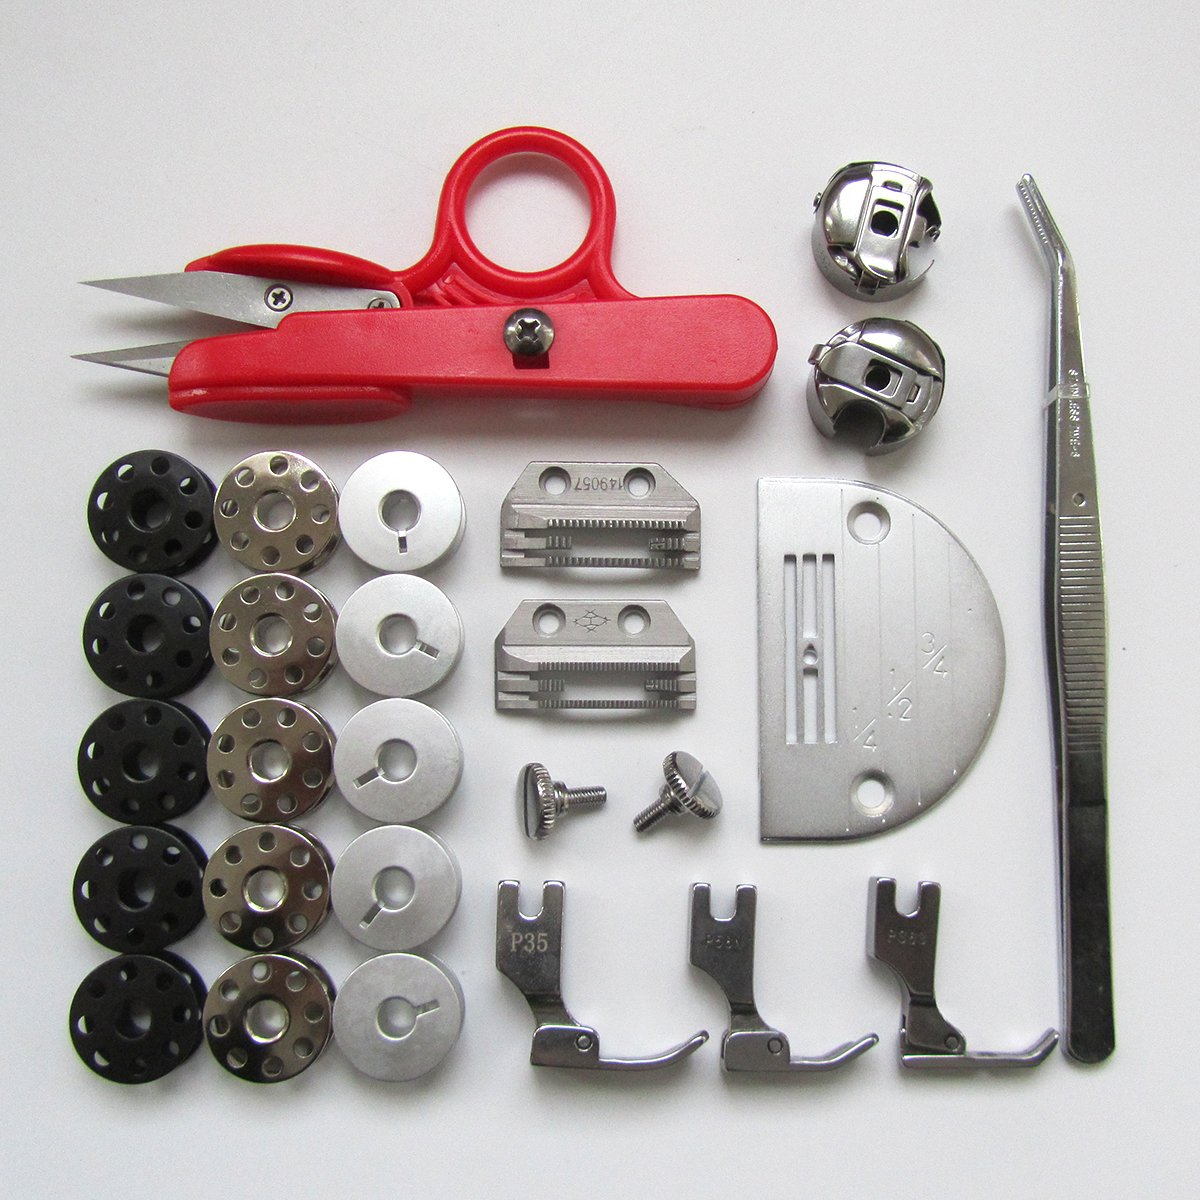 FOR JUKI DDL-8700 BROTHER DB2-B737, B735 SEWING MACHINE PARTS 13 PIECE SET ISMP-B #KP-SN13 KUNPENG